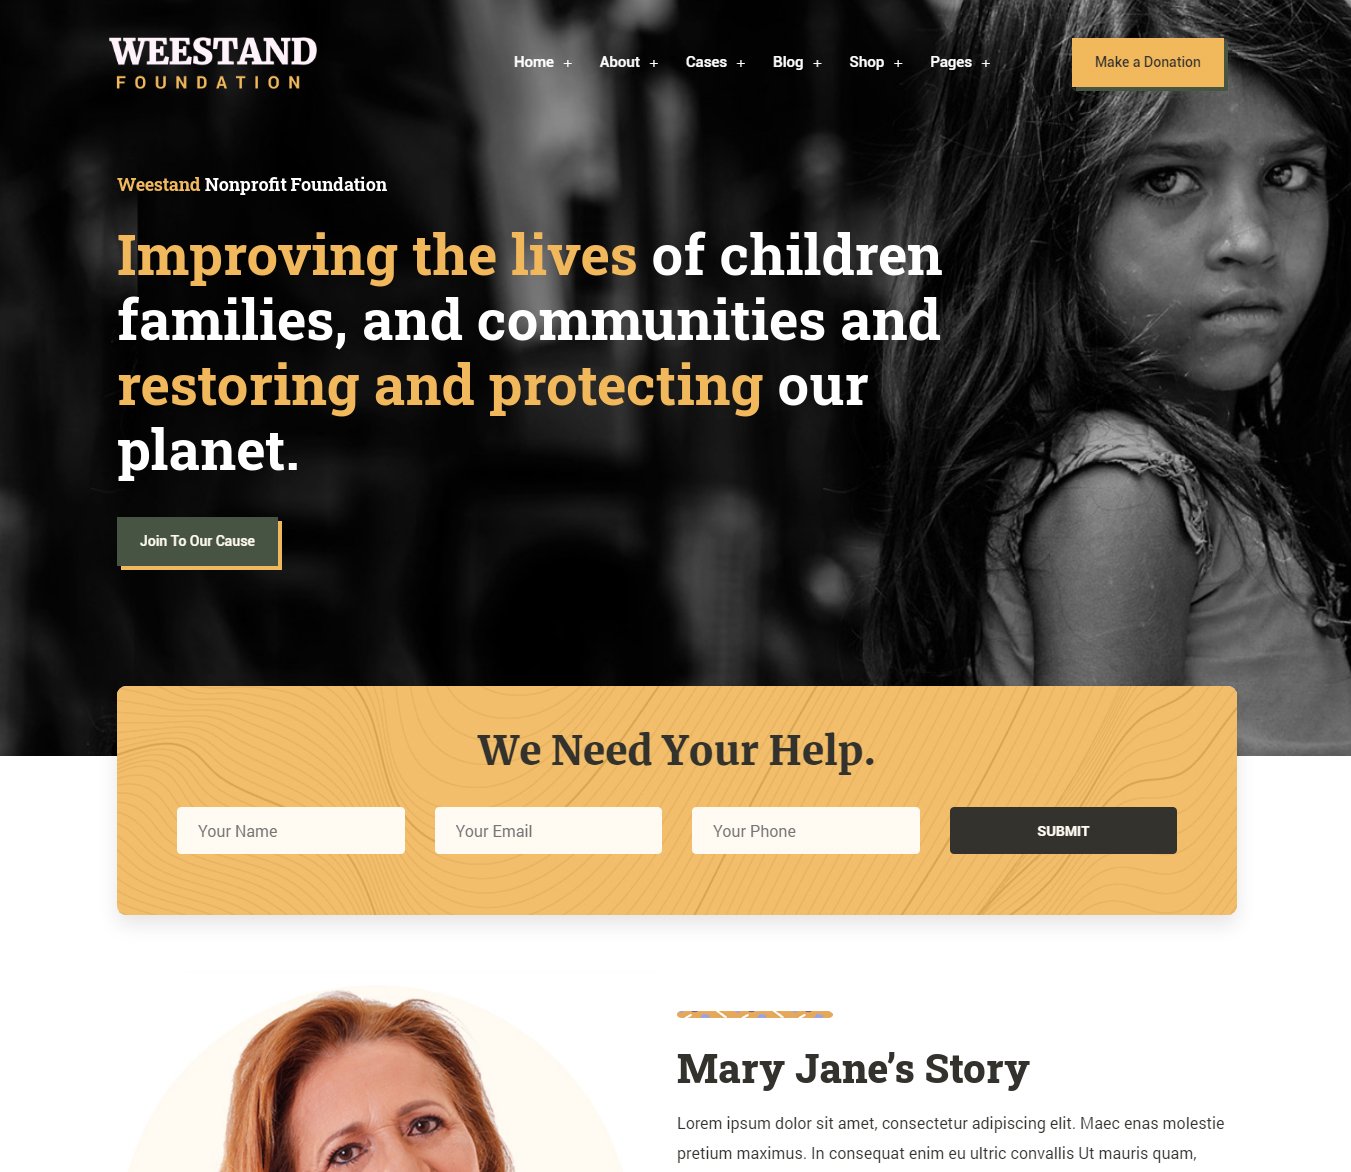 Weestand - Nonprofit, Charity, NGO Fundraising WordPress